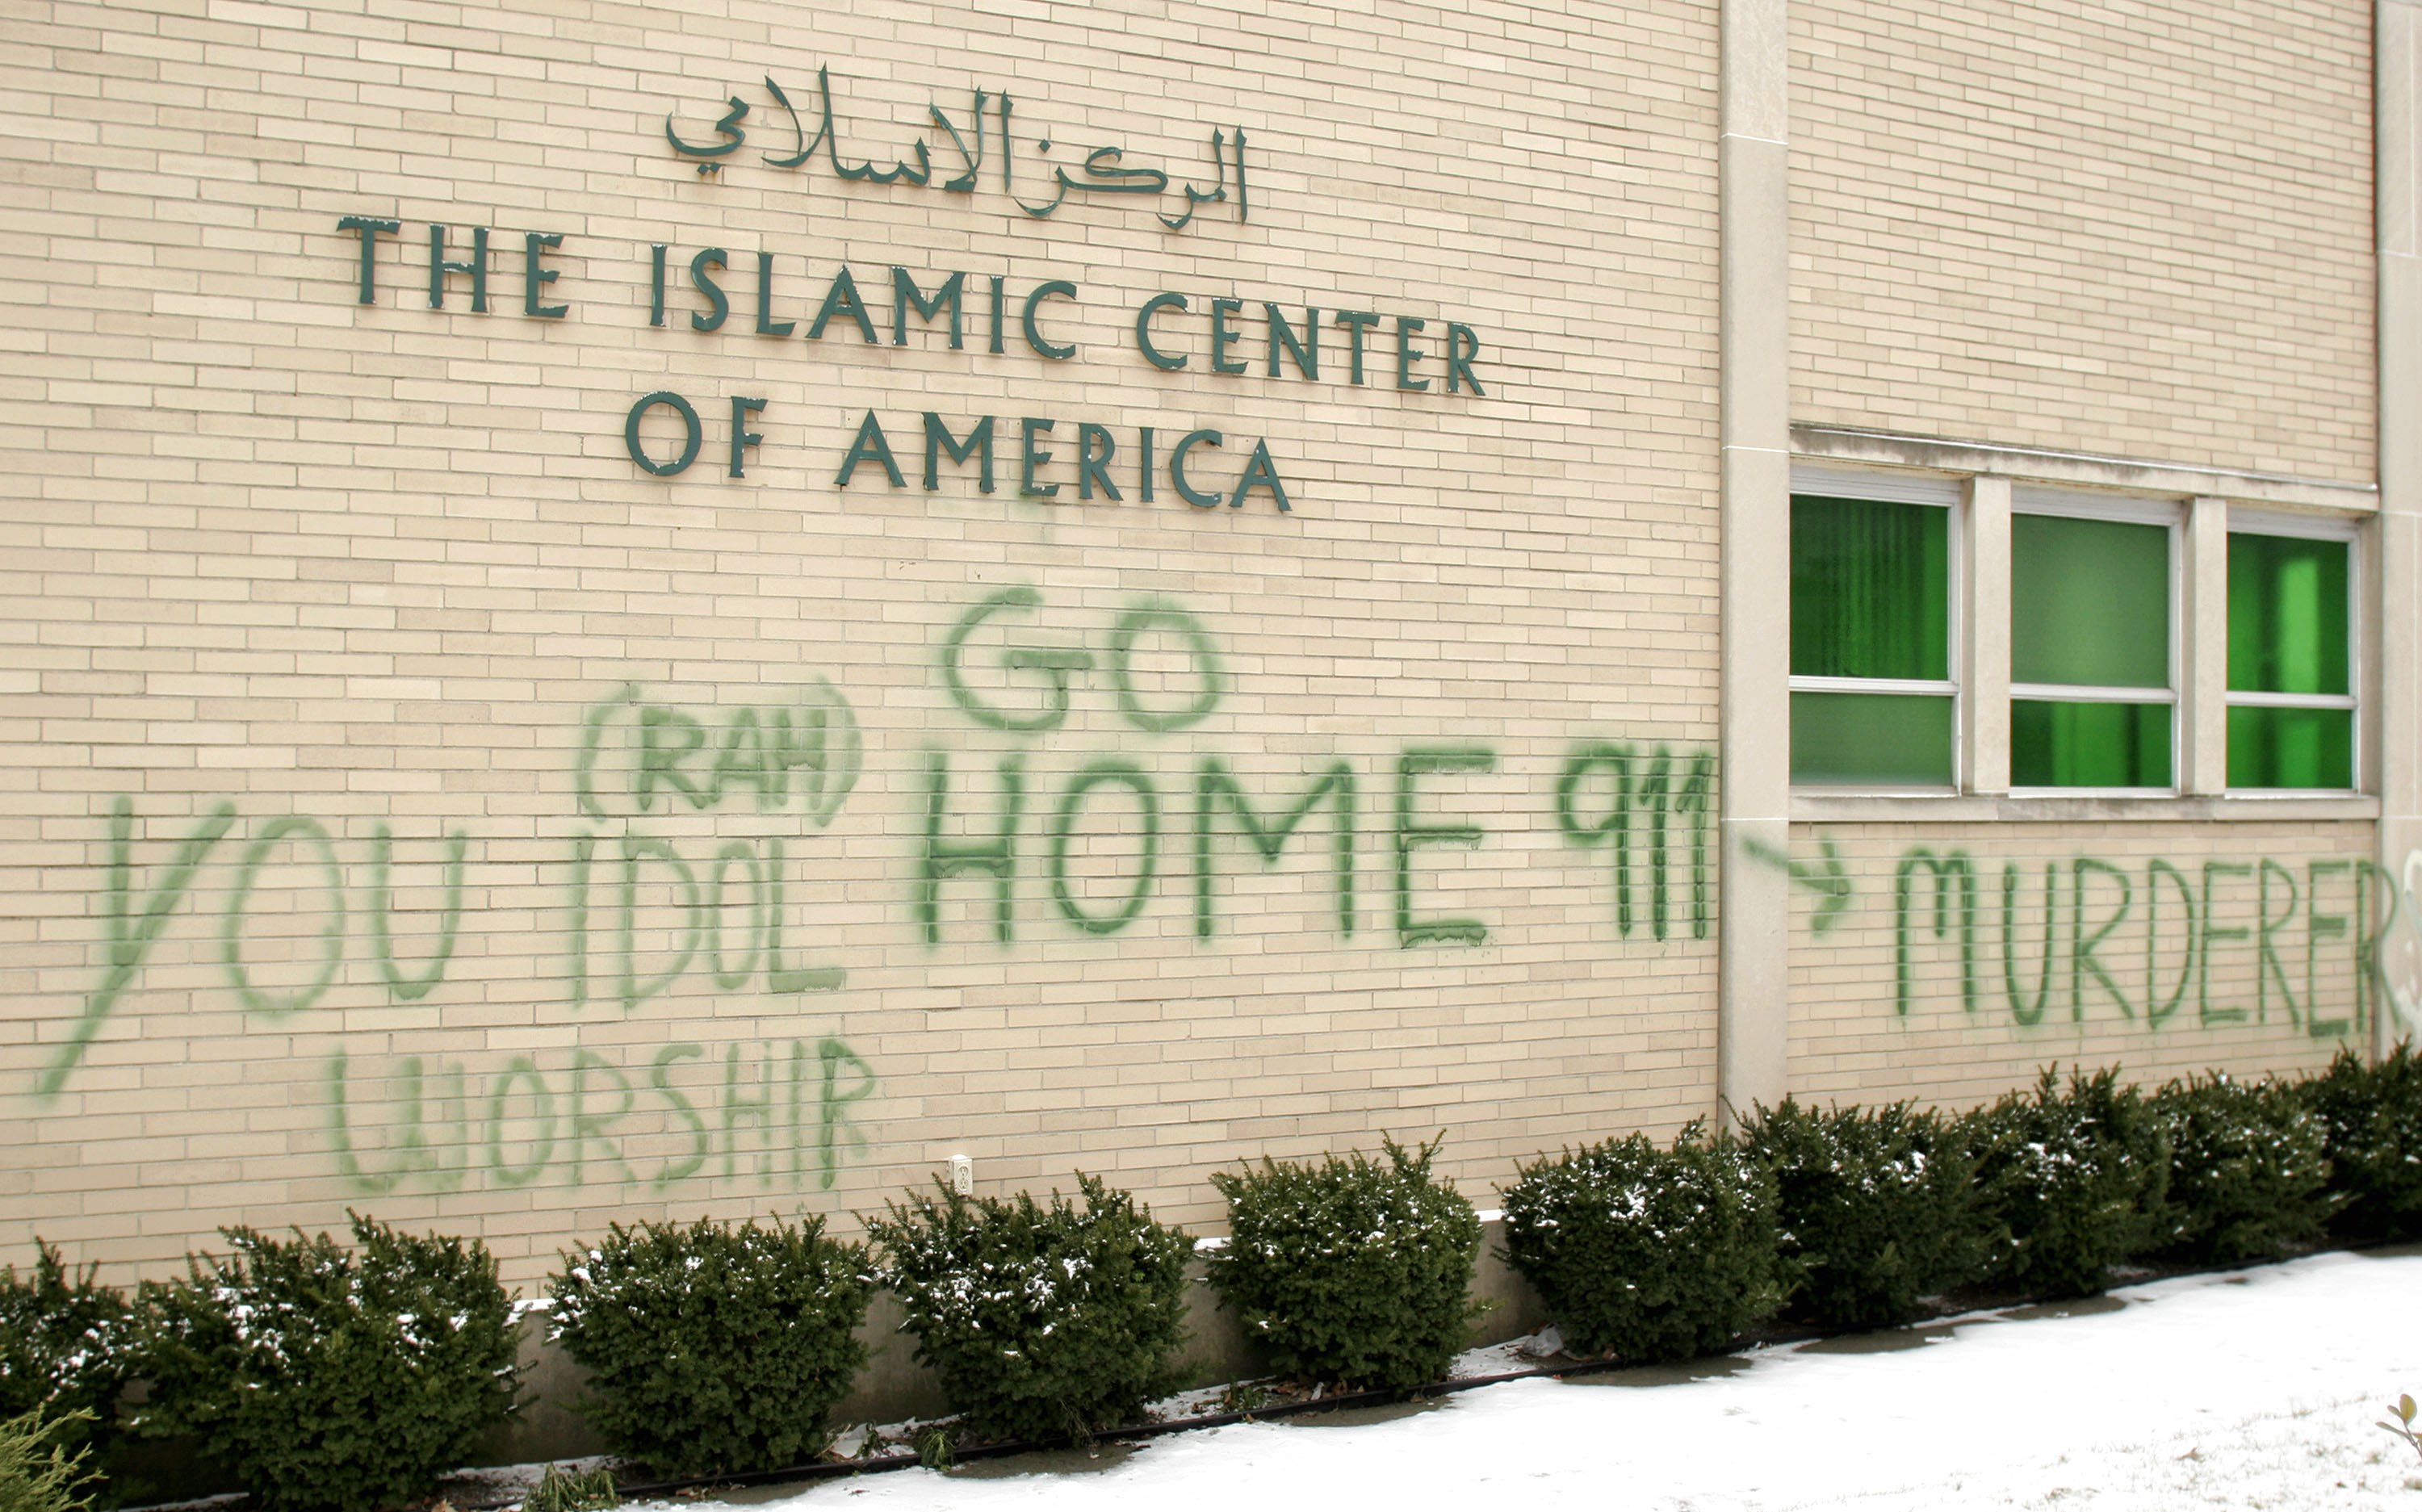 9 11 and muslims A list of anti-muslim hate crimes and bias incidents collected by the splc from  news reports since 9/11.